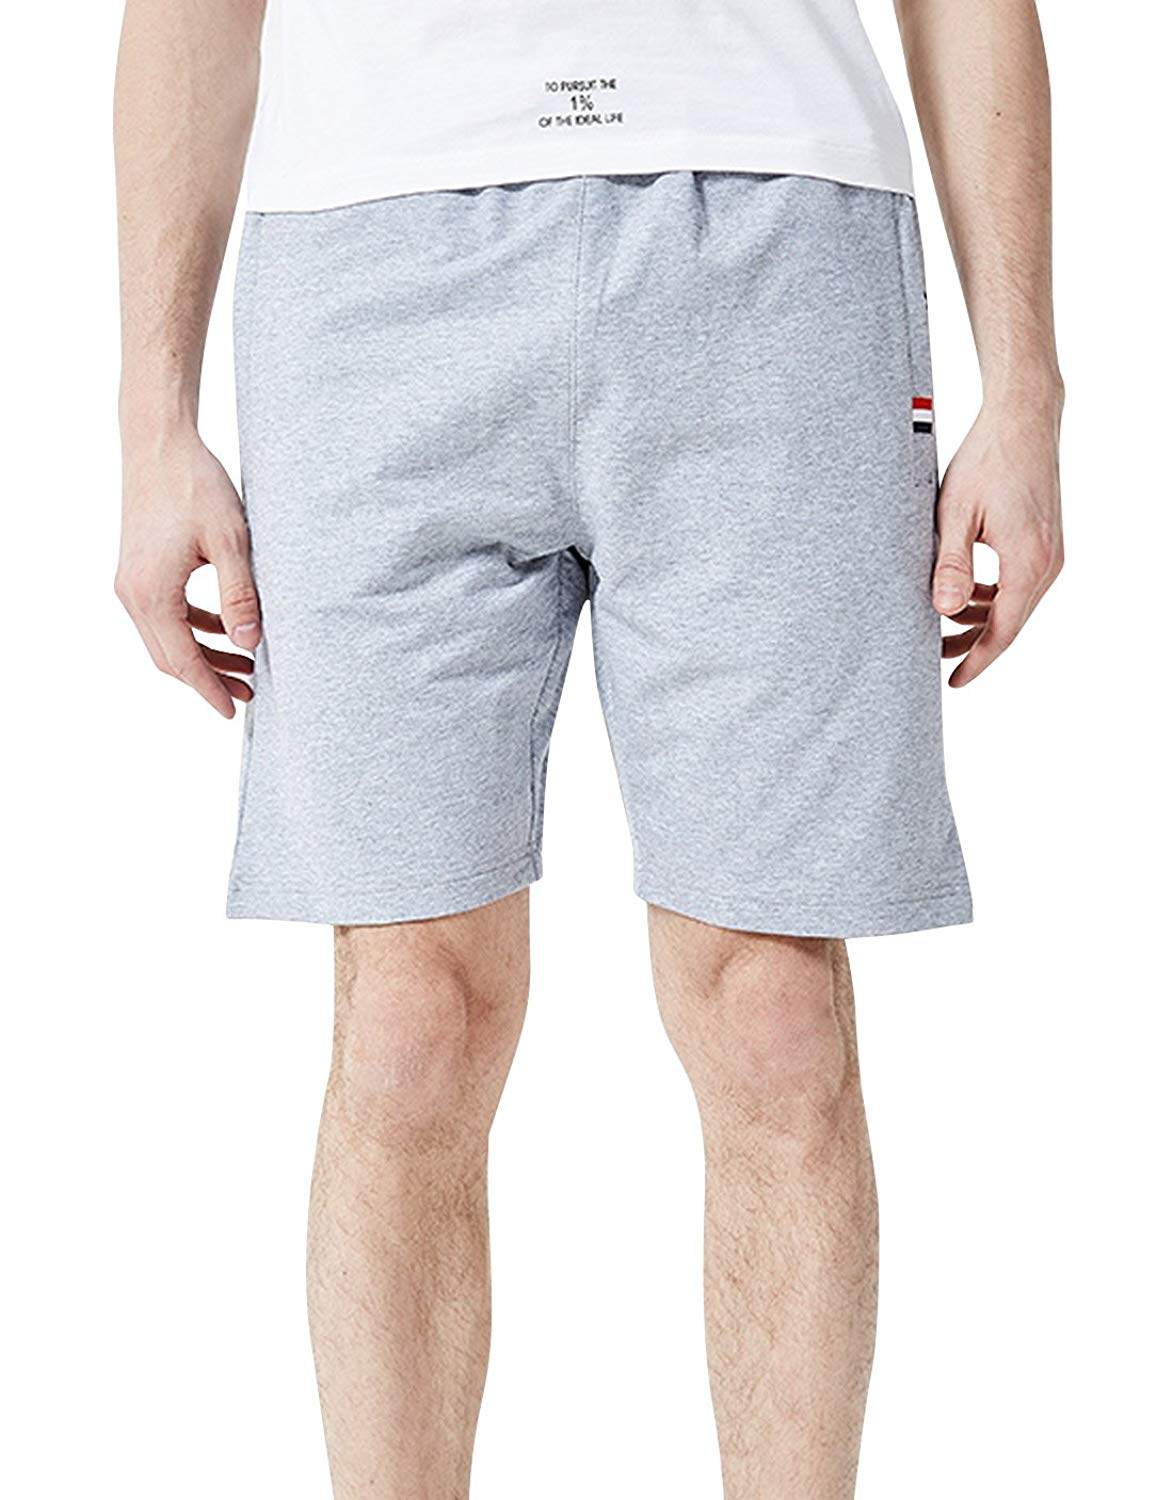 AIEOE Mens Athletic Shorts Comfort Cotton Cargo Shorts Beach Shorts